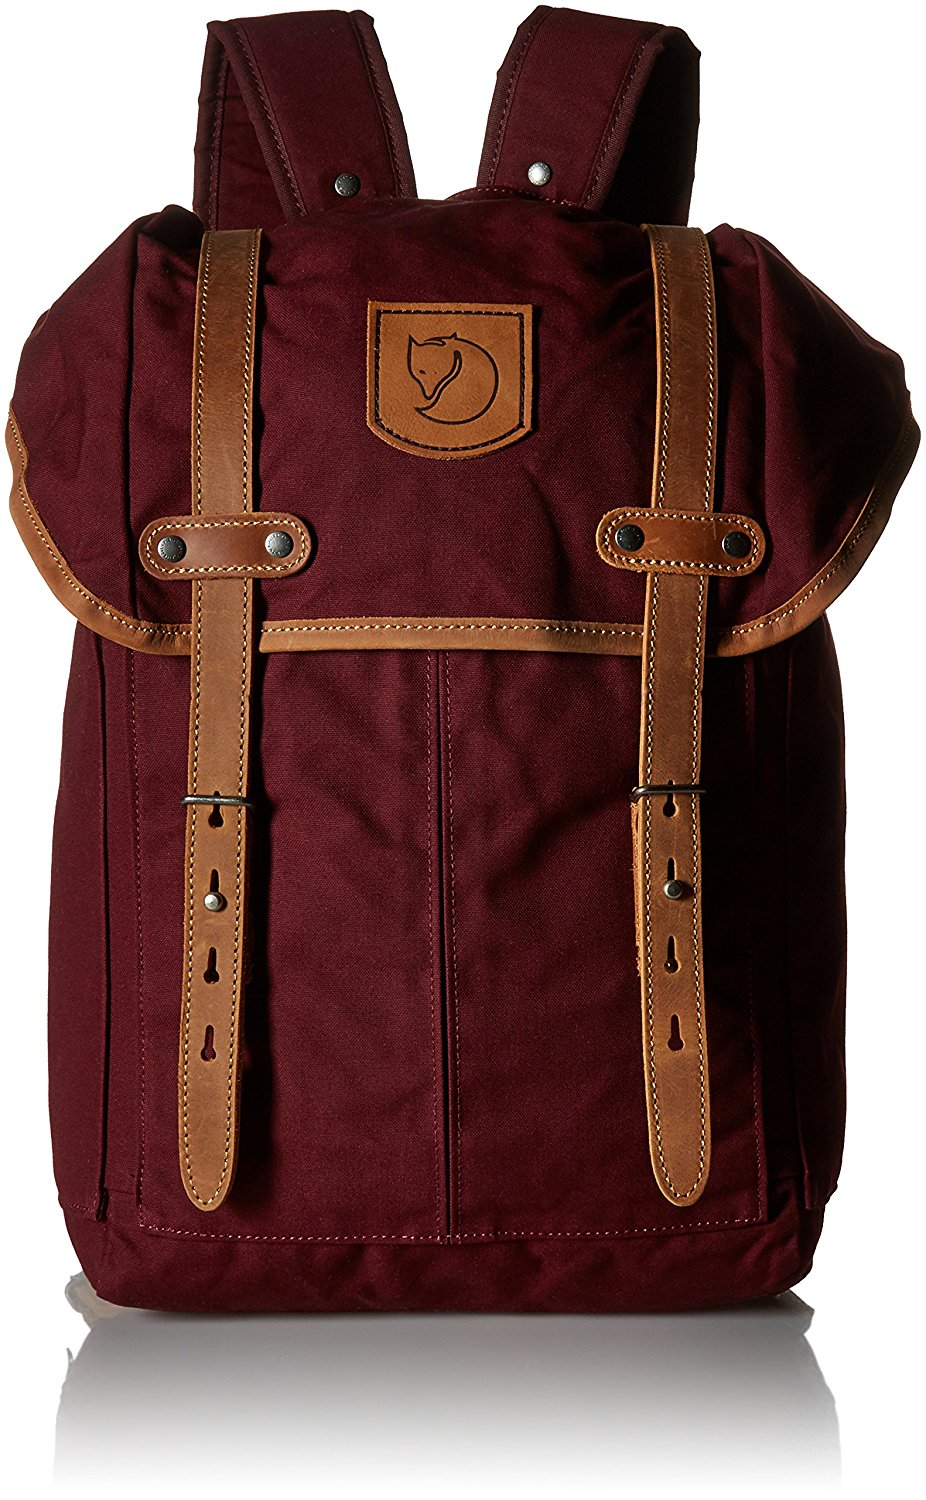 22 best stylish backpacks